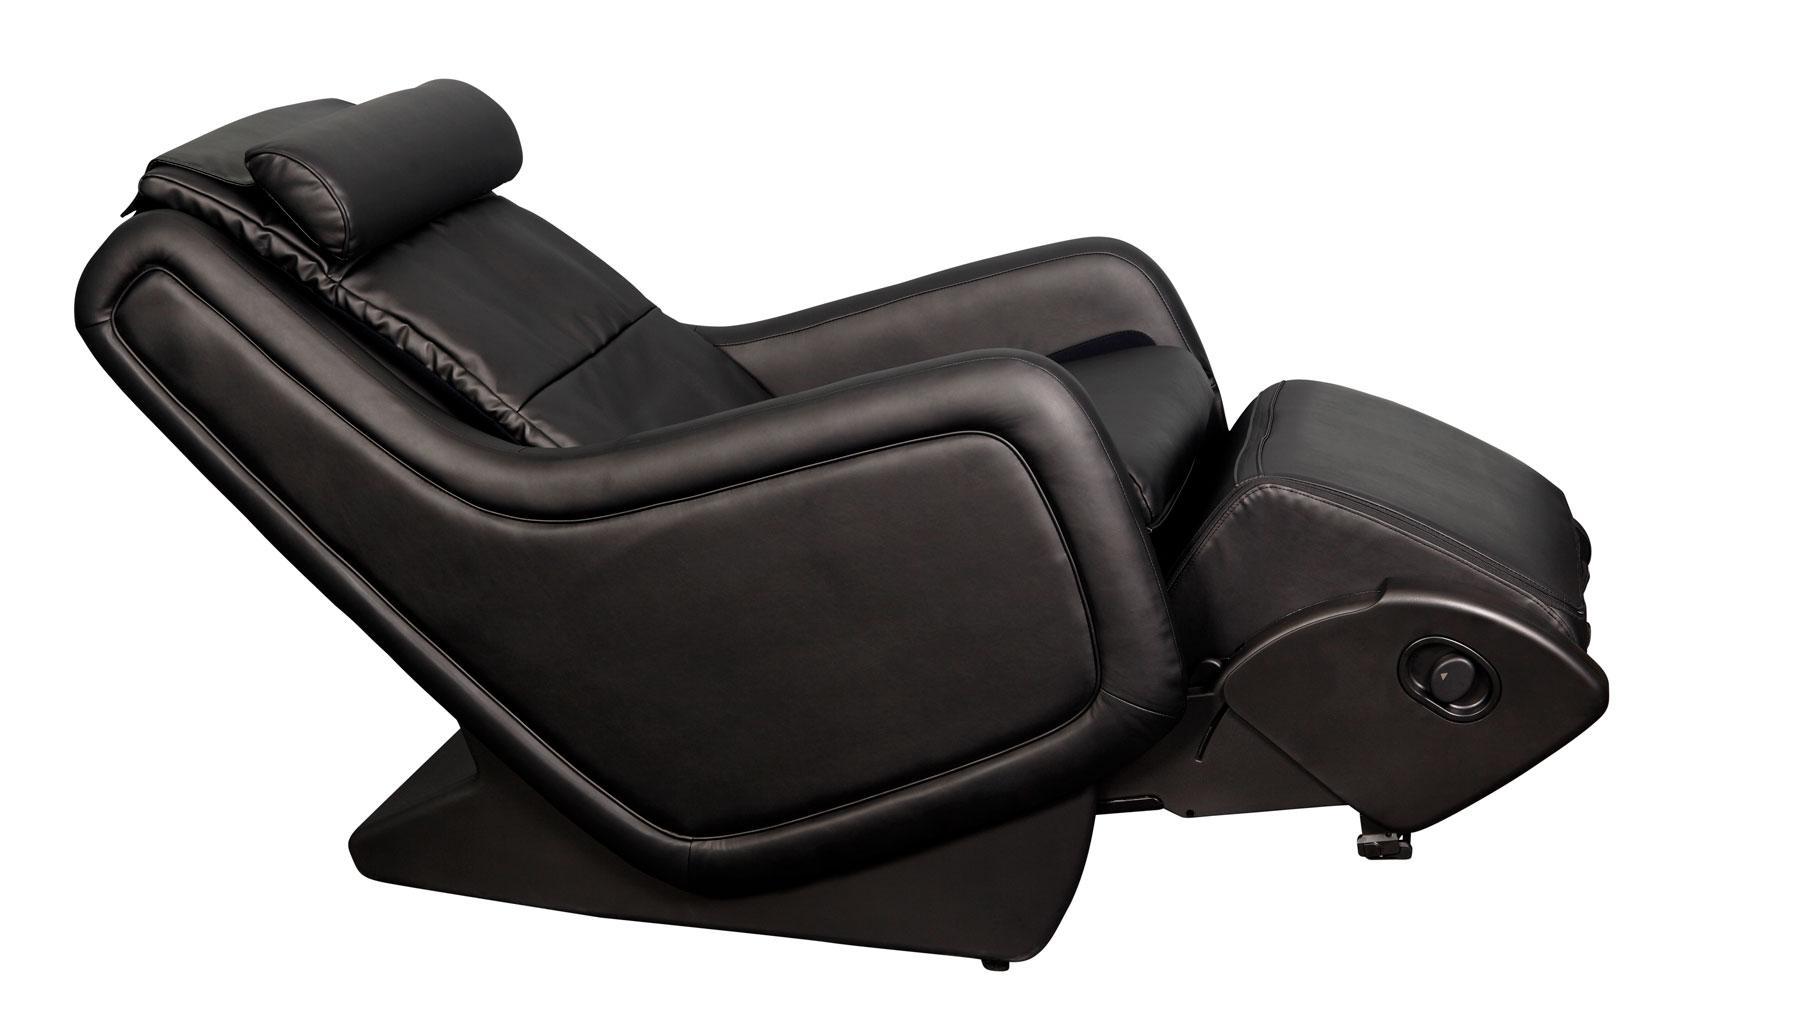 Relax The Back Office Chair Reviews: The Relaxa Massage Chair Office Furniture Store